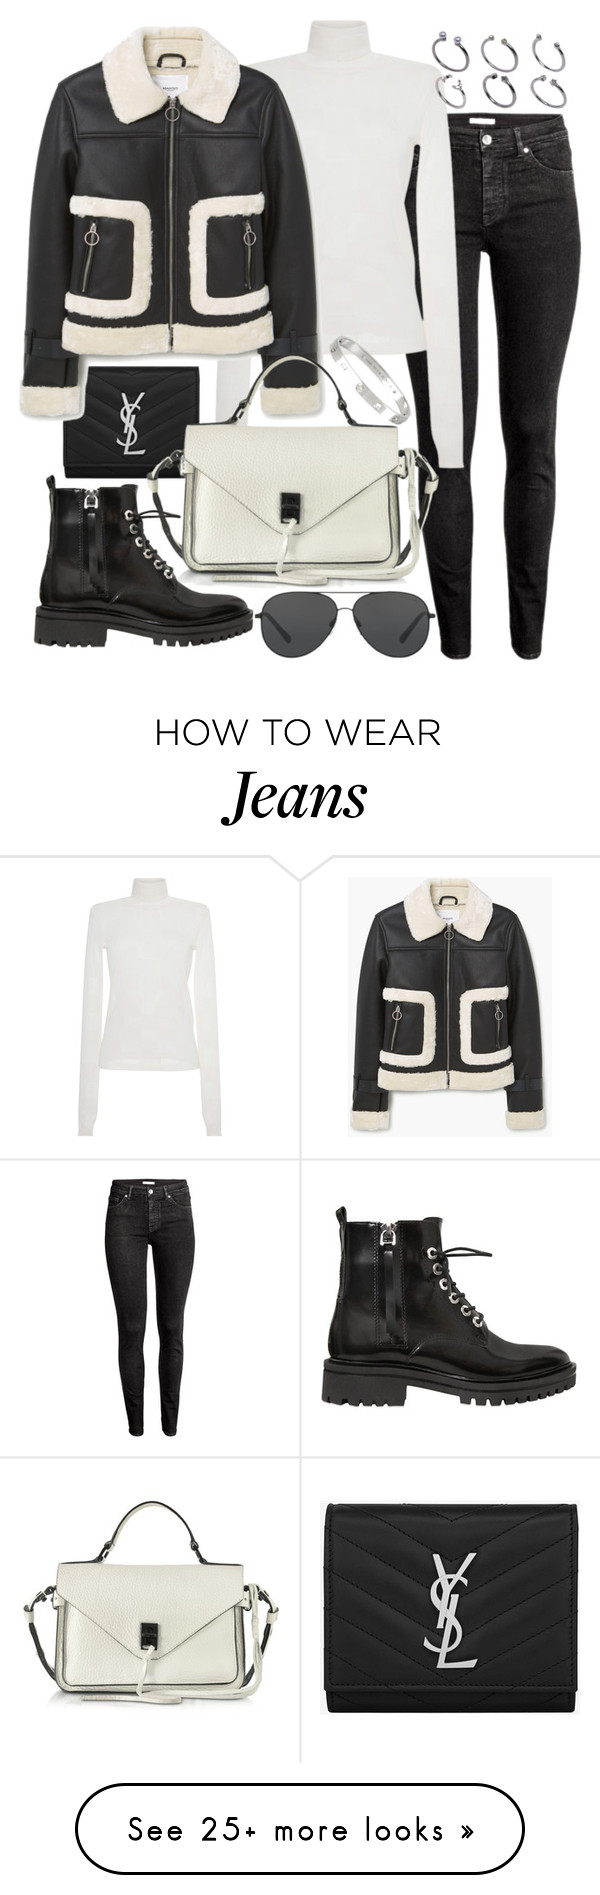 """Untitled #20506"" by florencia95 on Polyvore featuring Yves Saint Laurent, MSGM, MANGO, Rebecca Minkoff, Kendall + Kylie, Michael Kors, Cartier and ASOS"